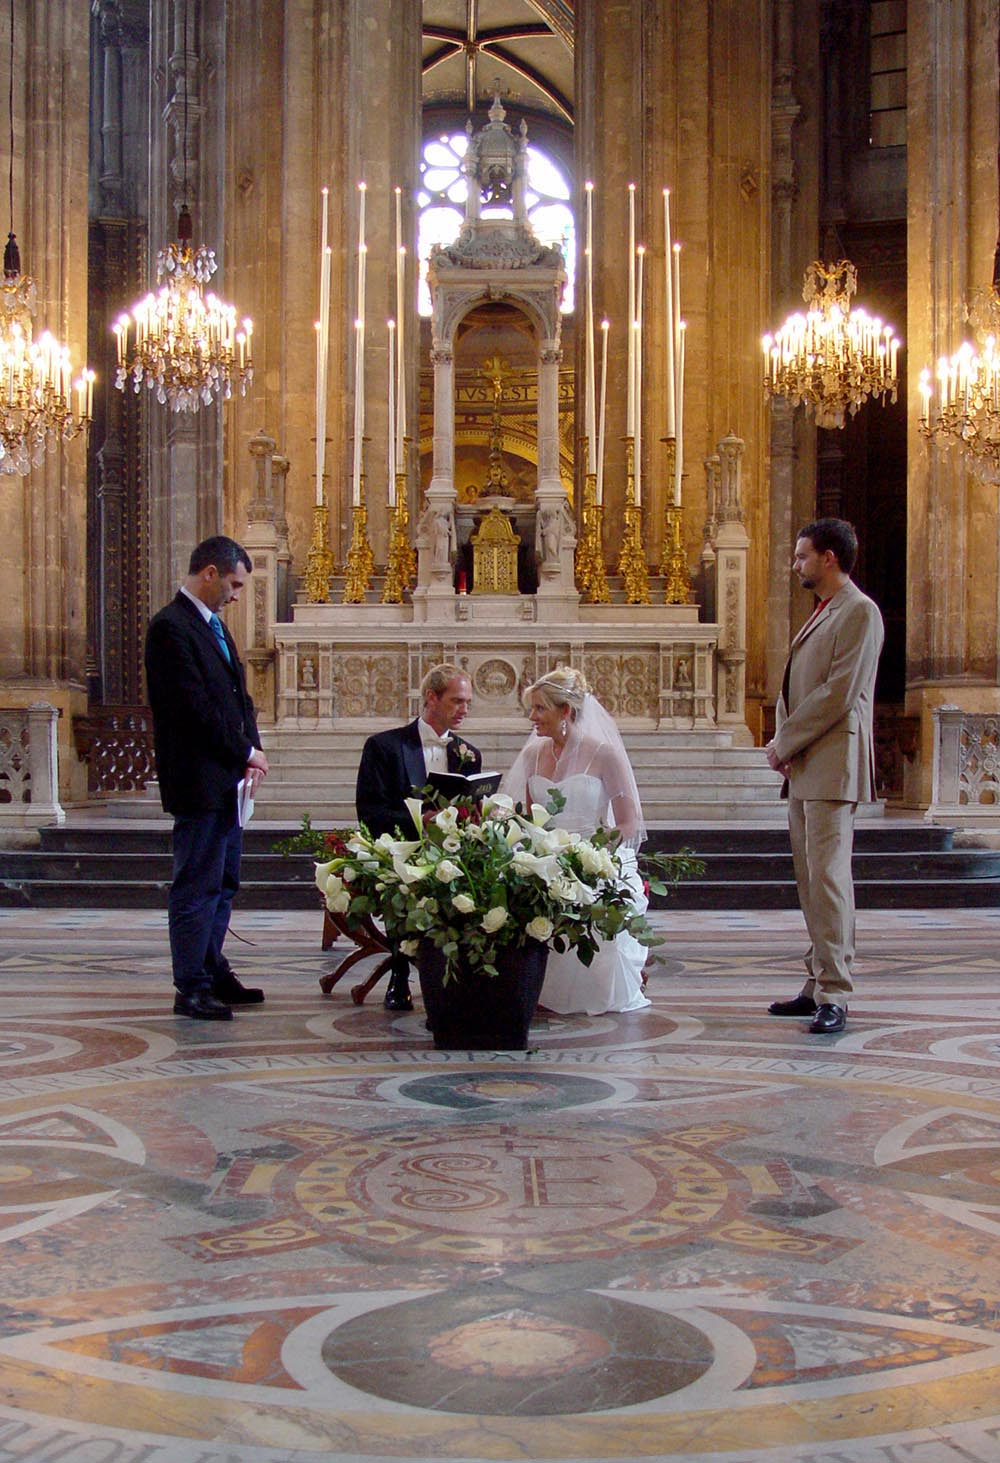 Wedding ceremony at Saint Opportune church in Paris, France